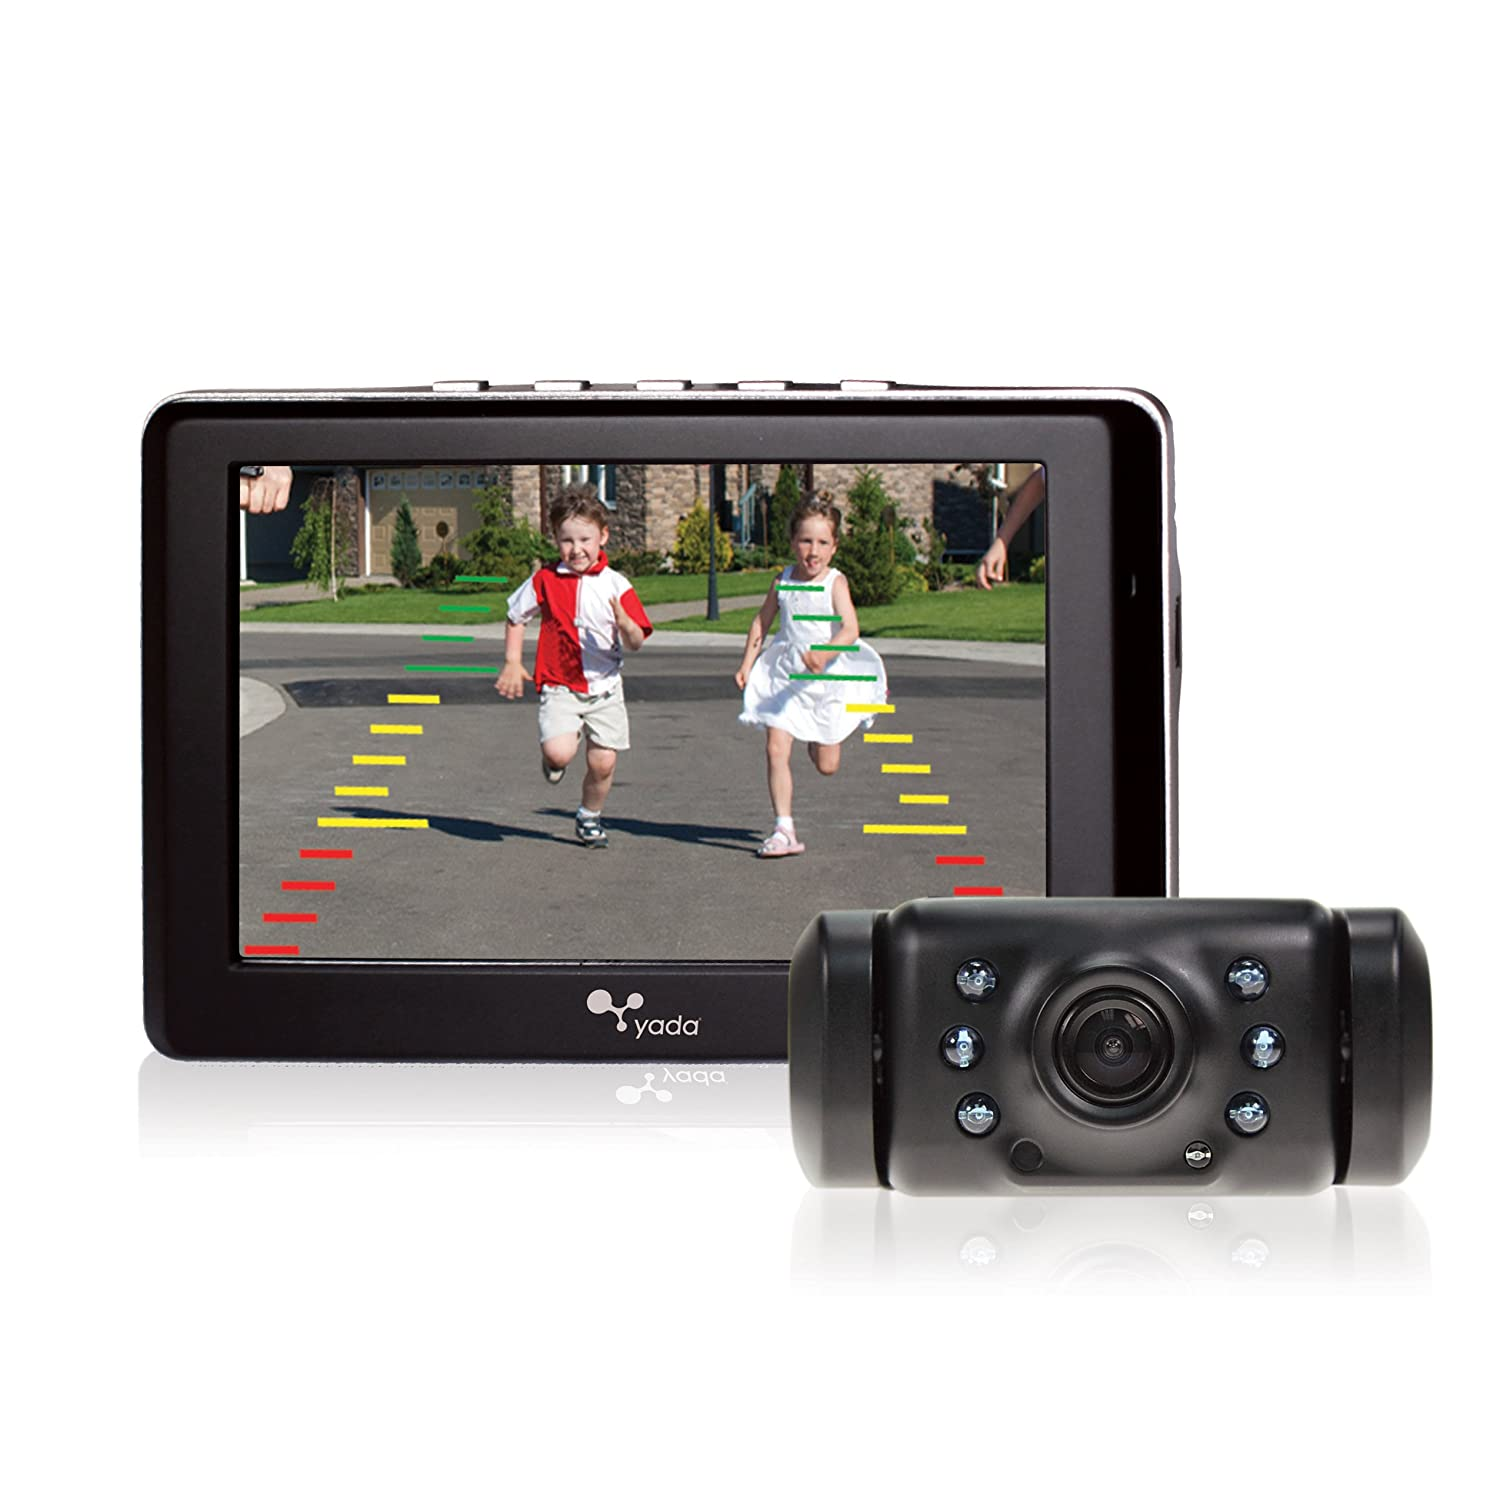 YADA WIRELESS BACKUP CAMERA - FOR CAR